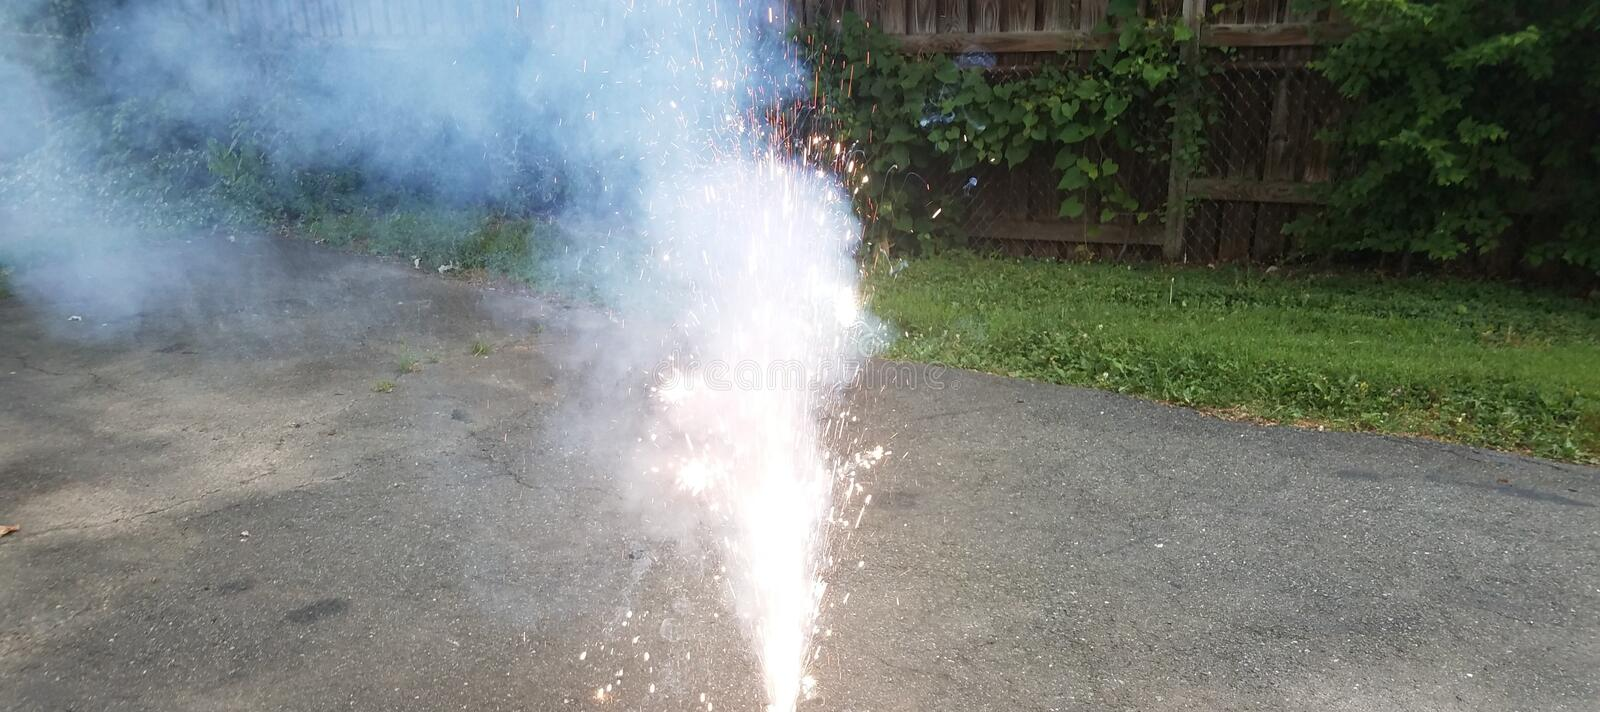 Firework or firecracker and sparks and smoke in driveway stock photo